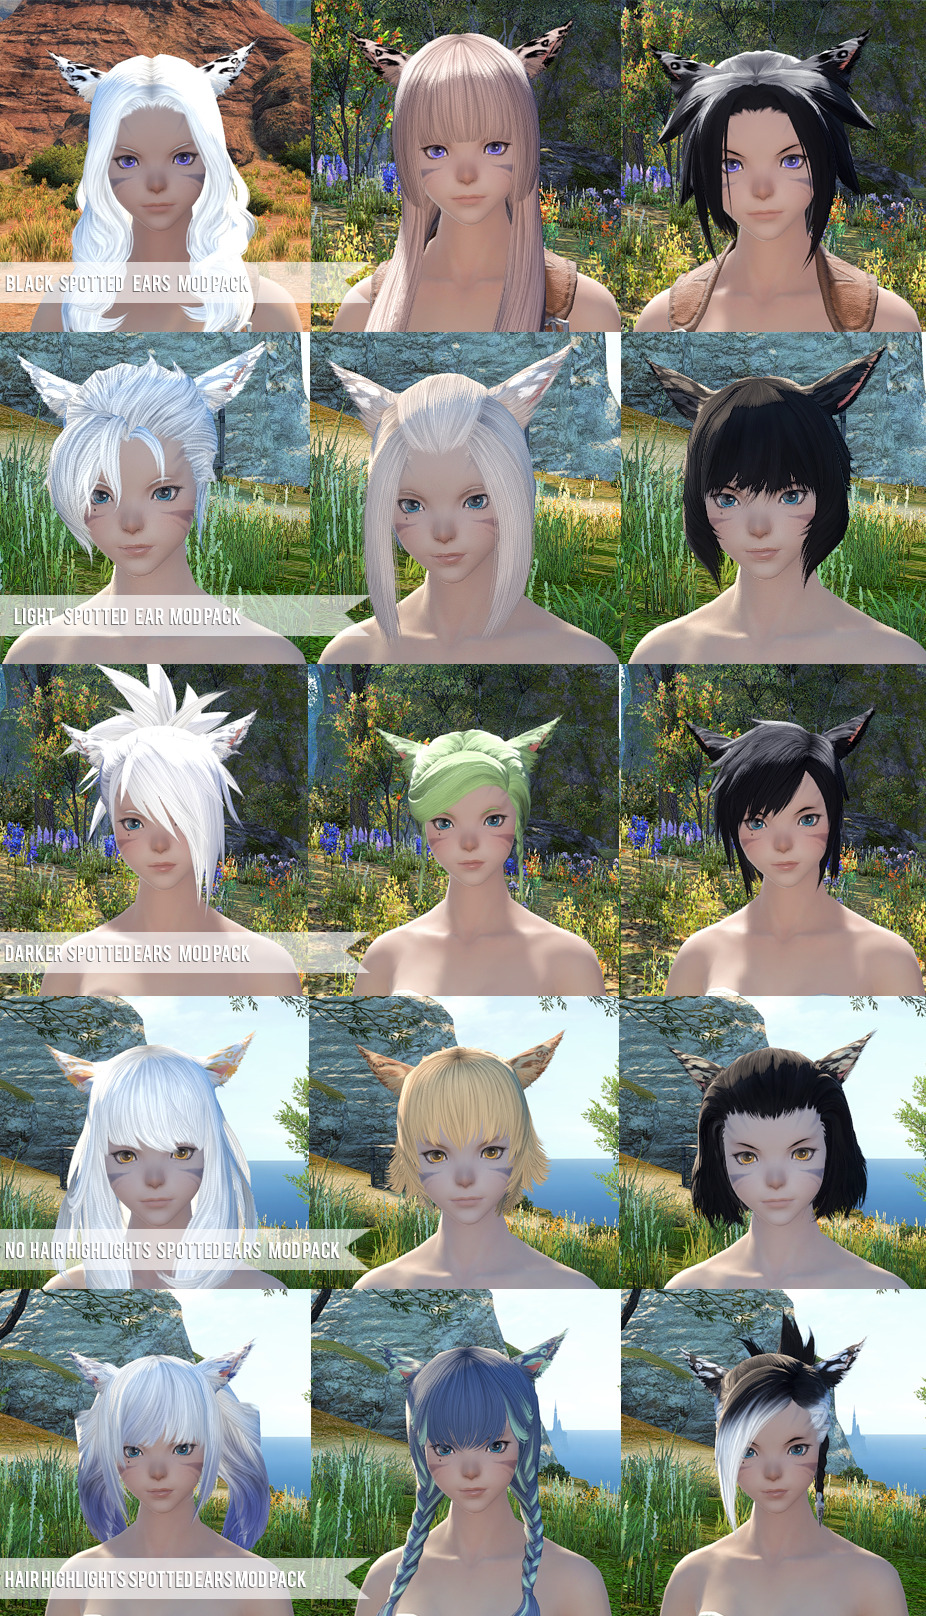 Miqo Te Hairstyles : hairstyles, HEALER, TREASURE, HUNTER, TRAVELER, Spotted, Female, Miqo'te, There, Packs...